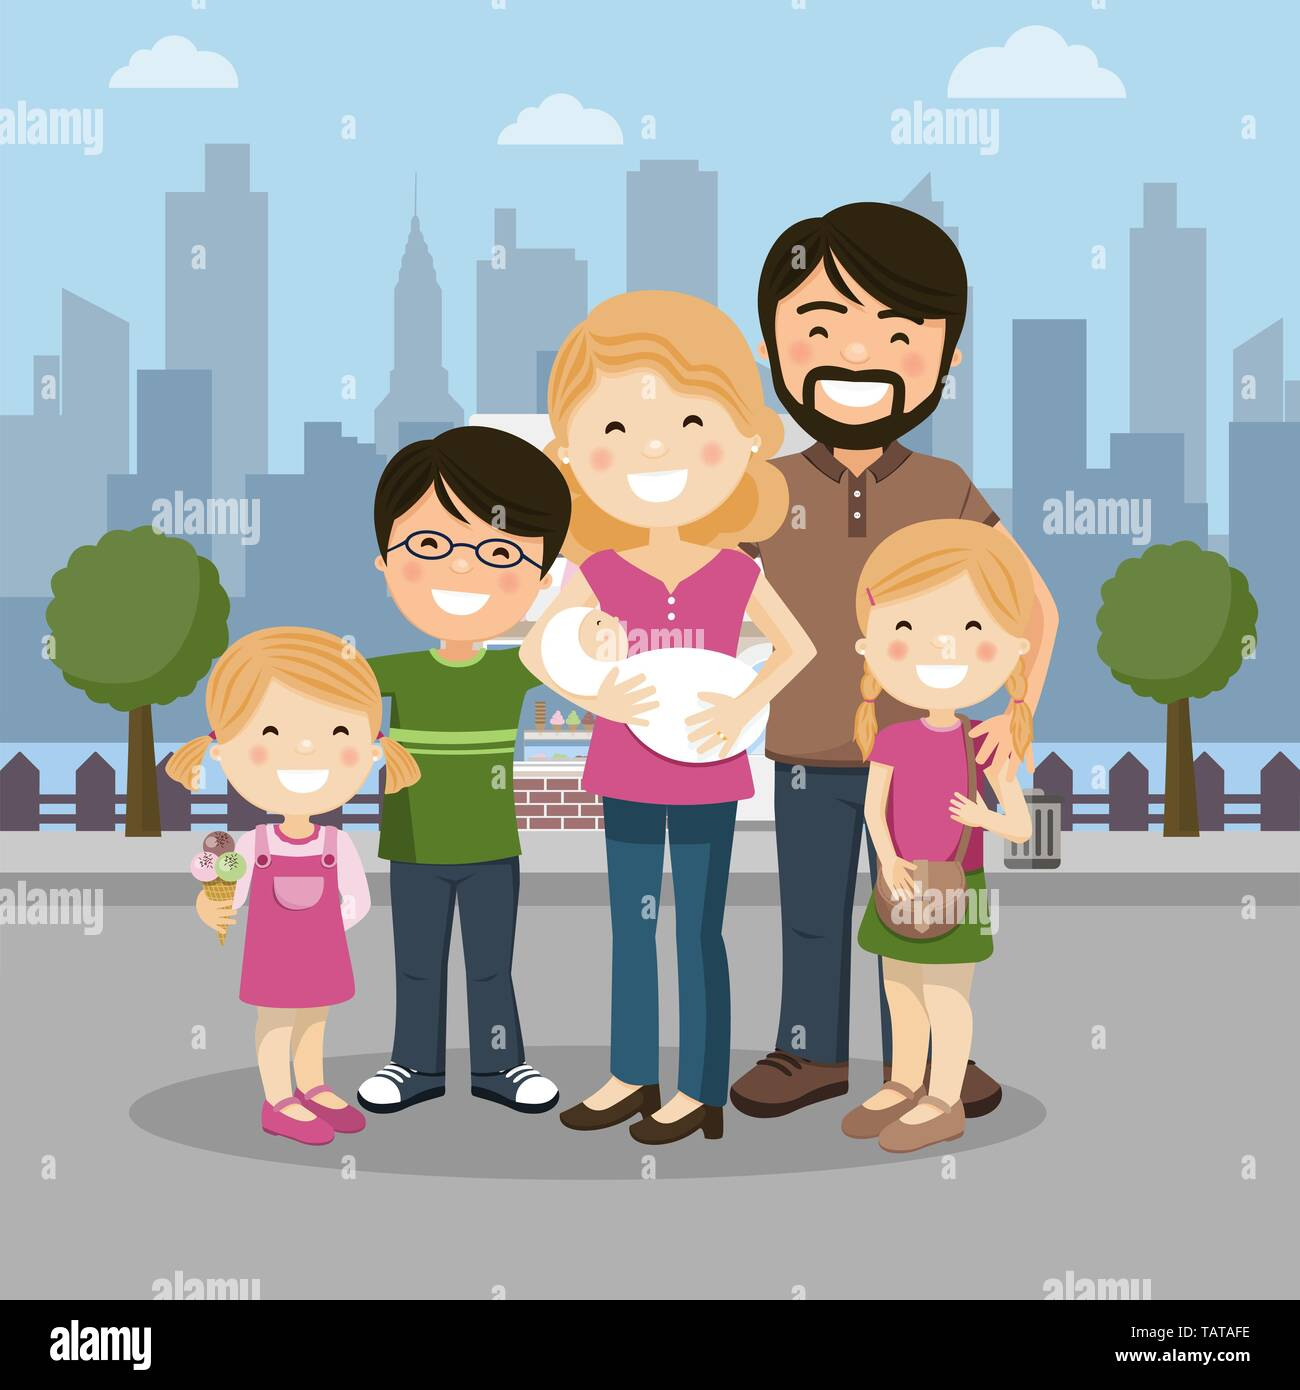 Happy family with parents, three children and babyborn in a city. People vector illustration - Stock Vector